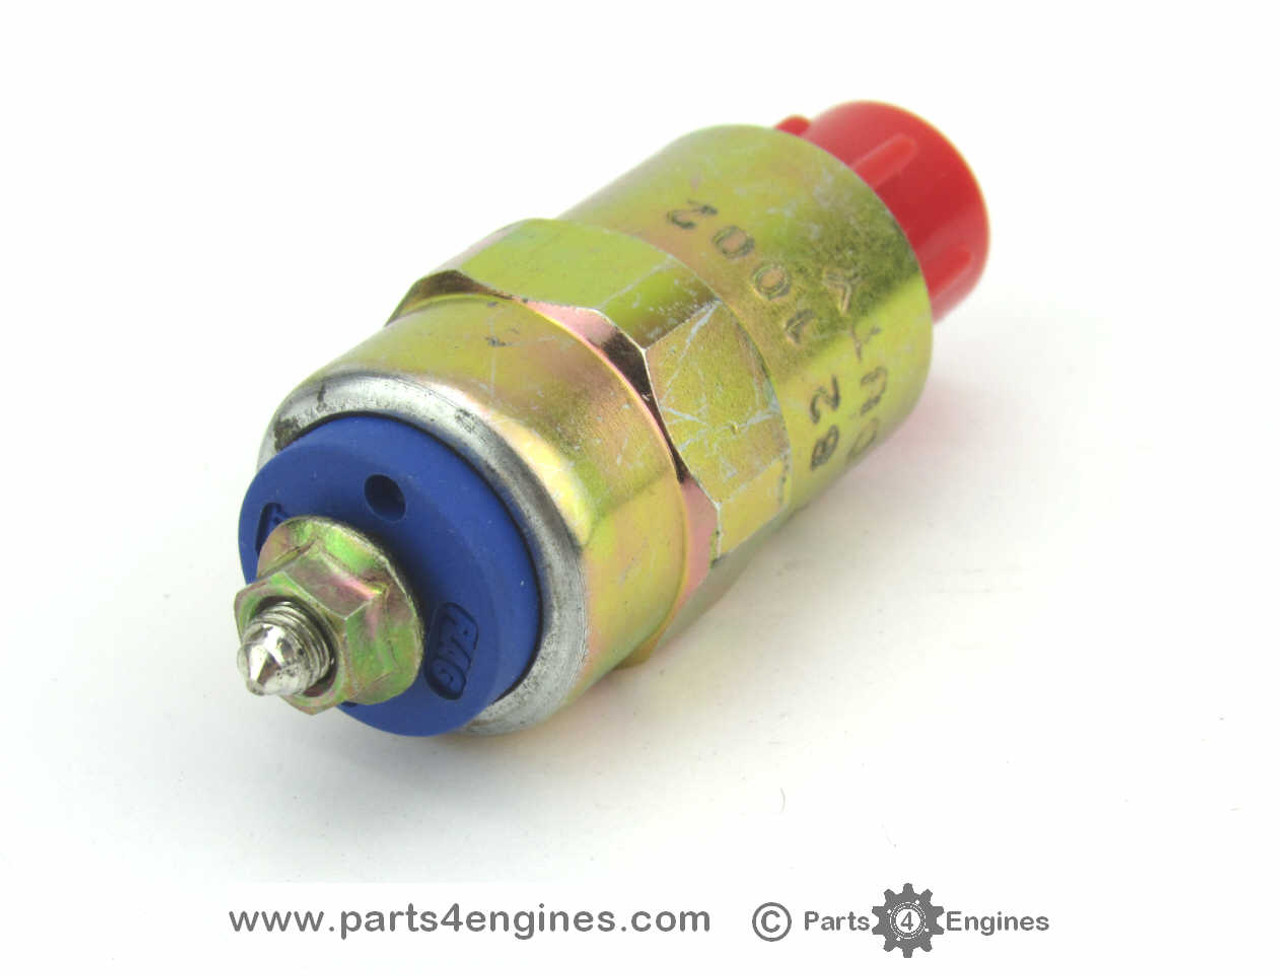 Perkins 4.248 12V Stop Solenoid from parts4engines.com - single screw connection